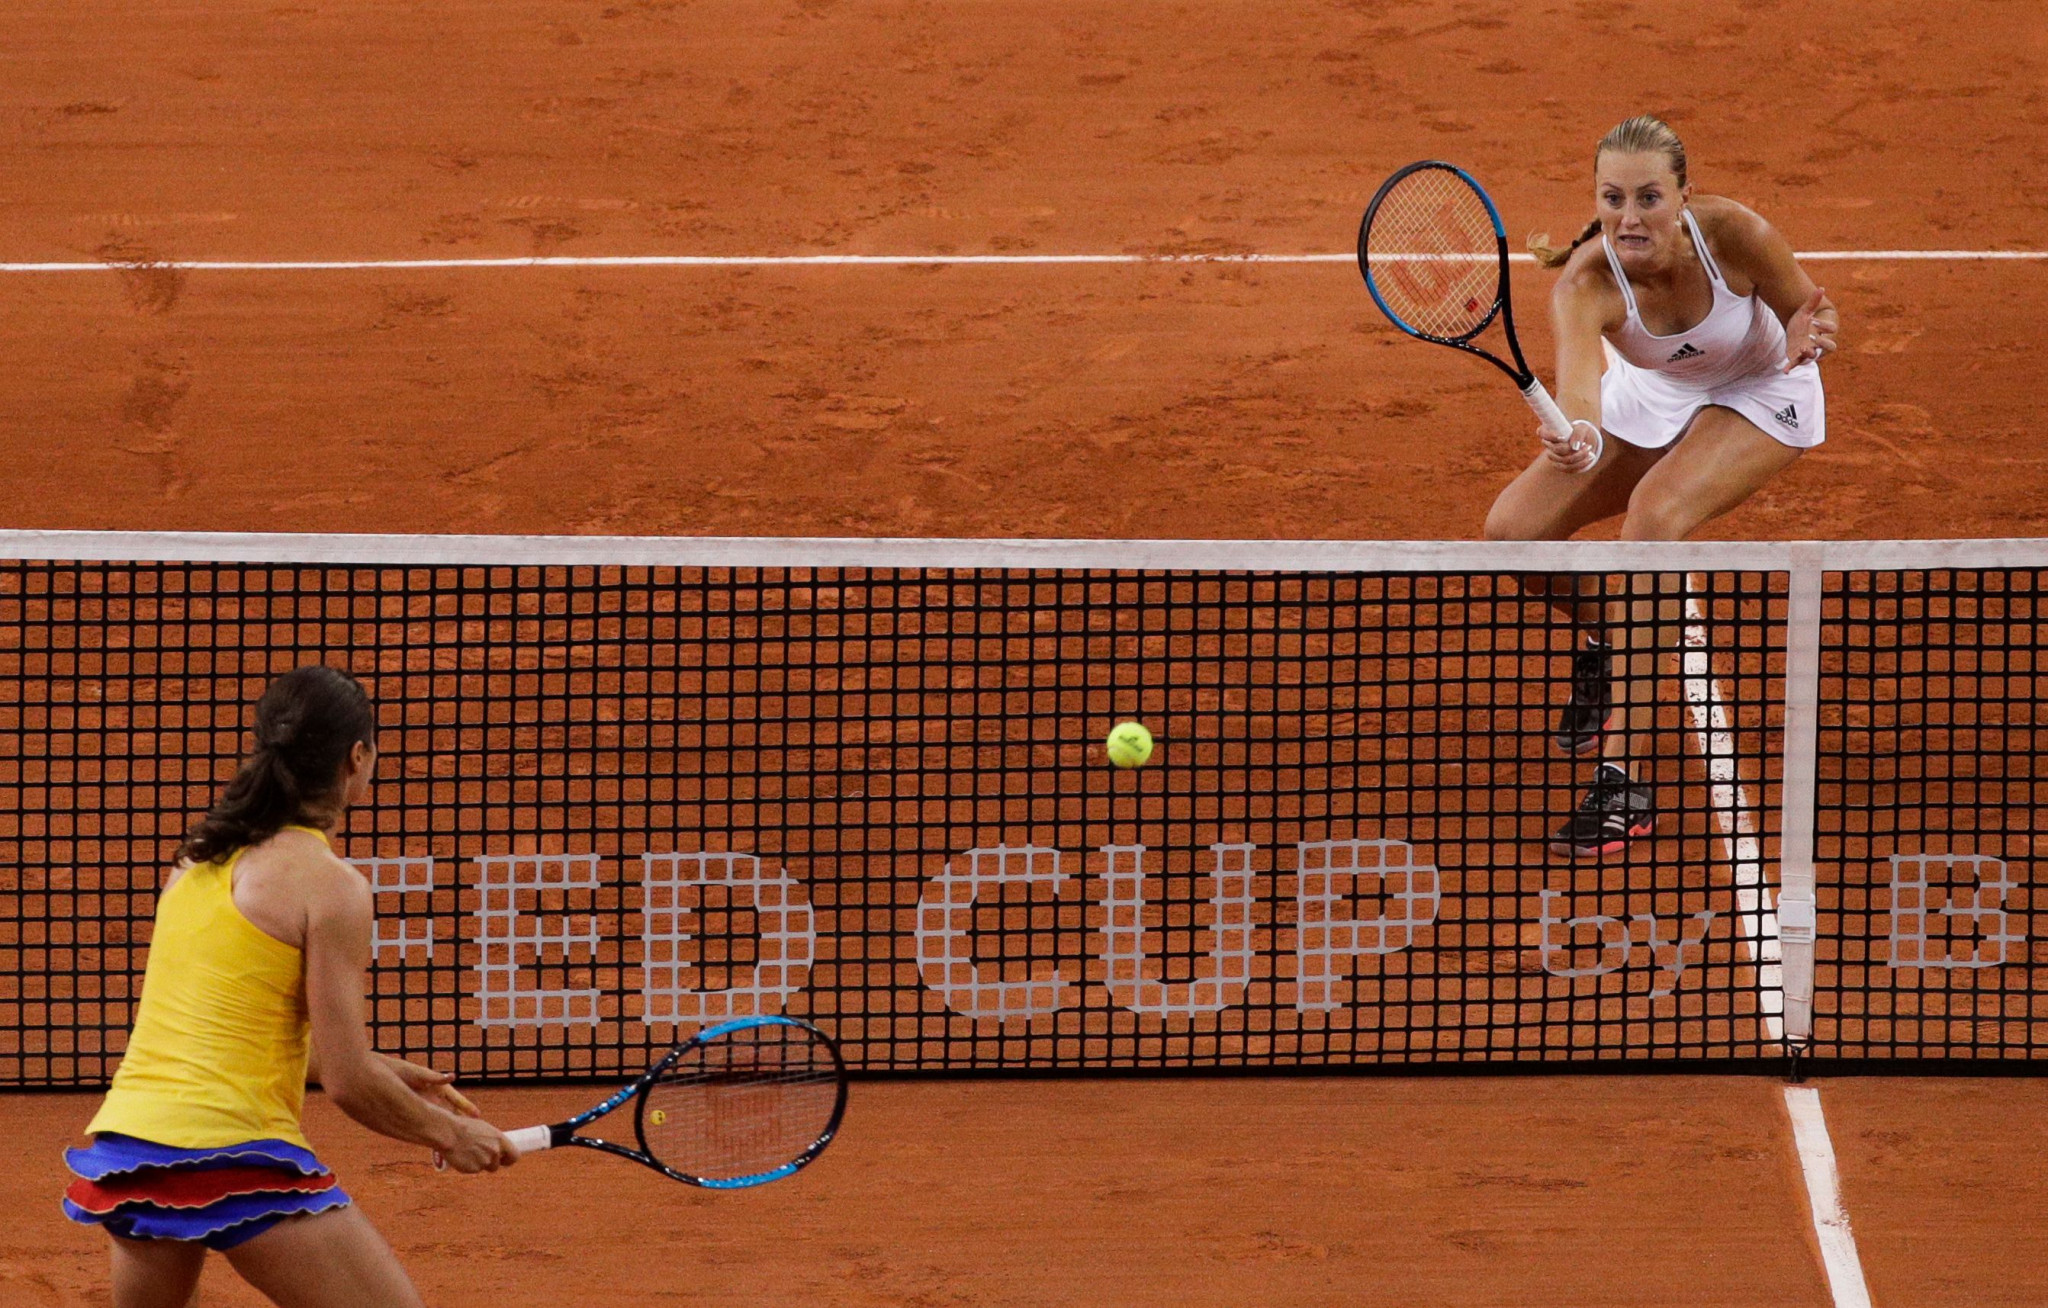 The finals will take place on clay in Budapest ©Getty Images